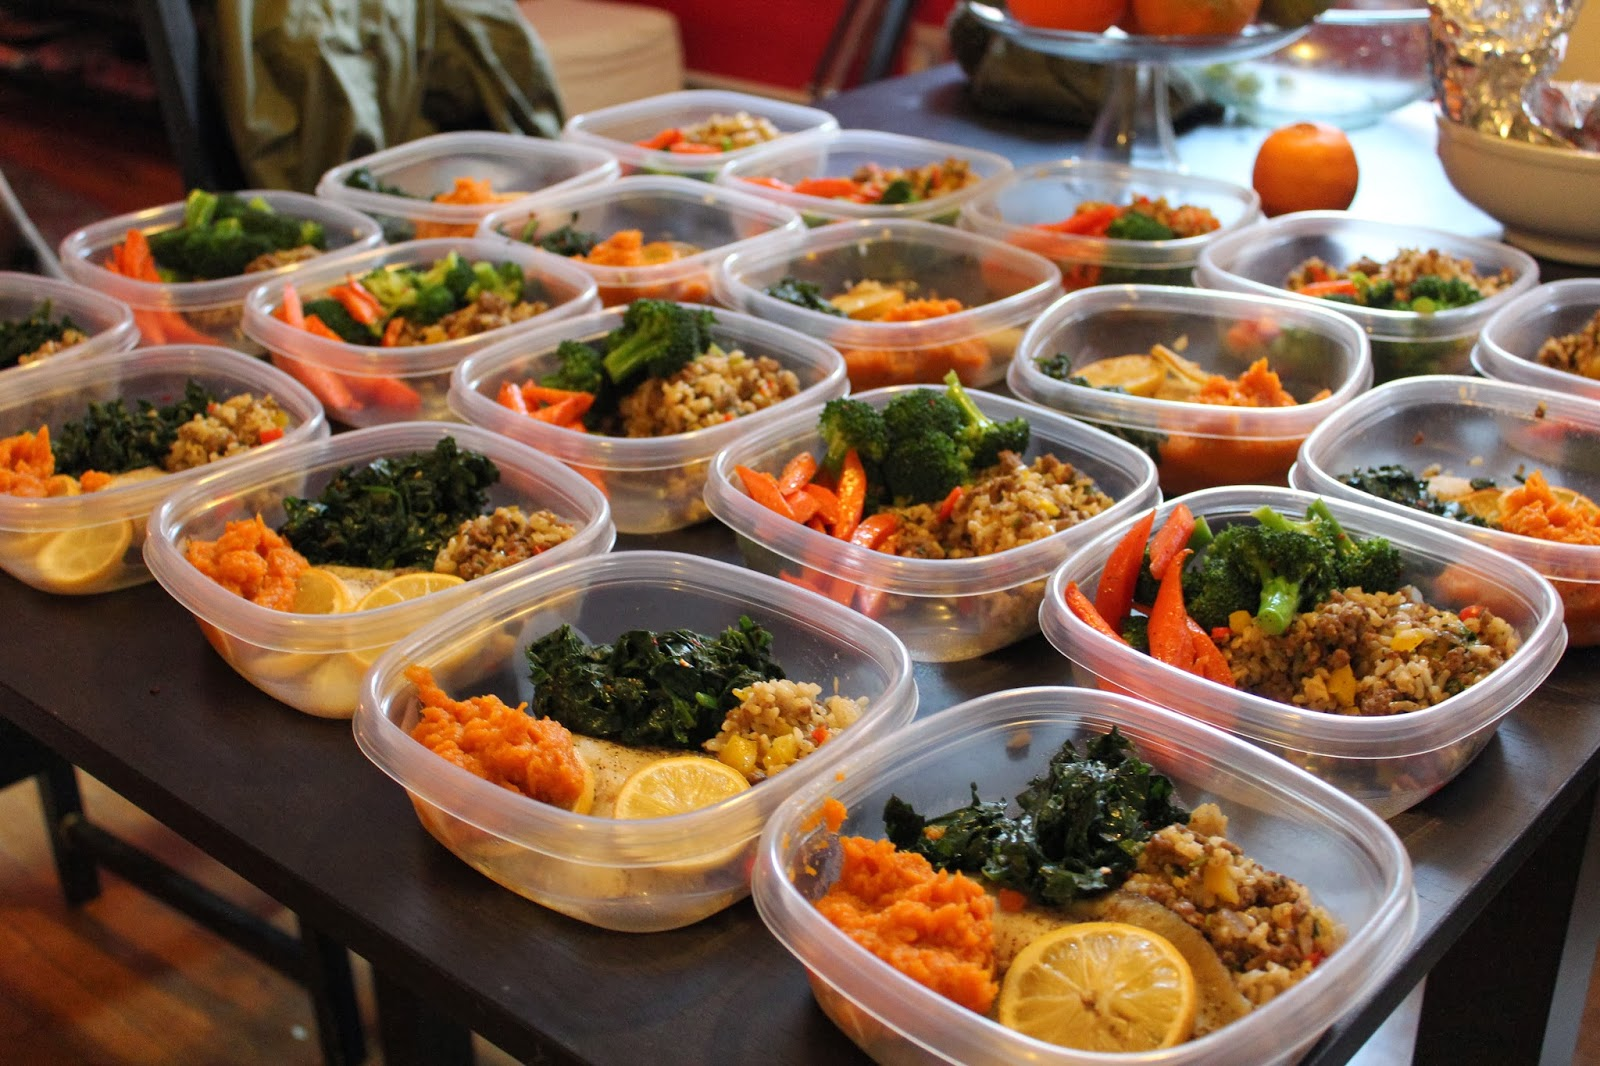 Mealprep Expert Tips For Easy Healthy And Affordable Meals All Week Long